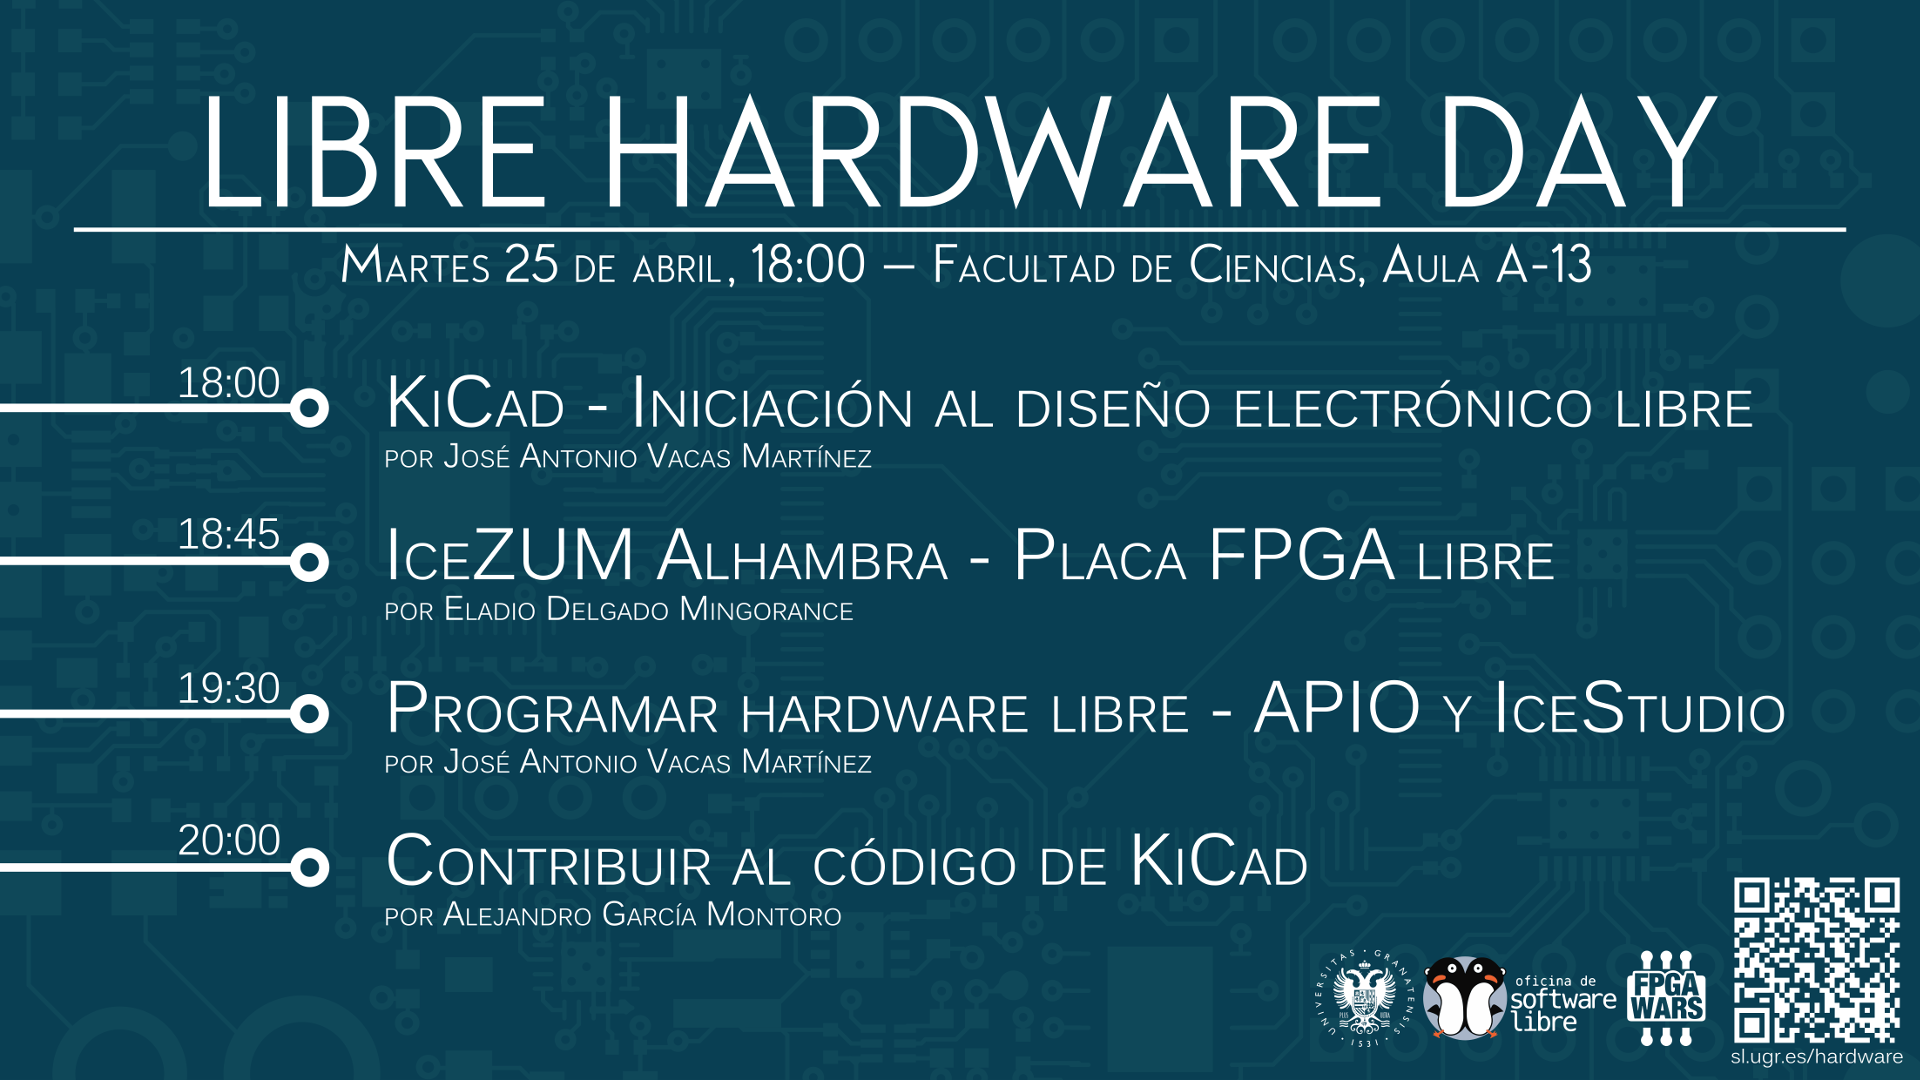 Libre Hardware Day